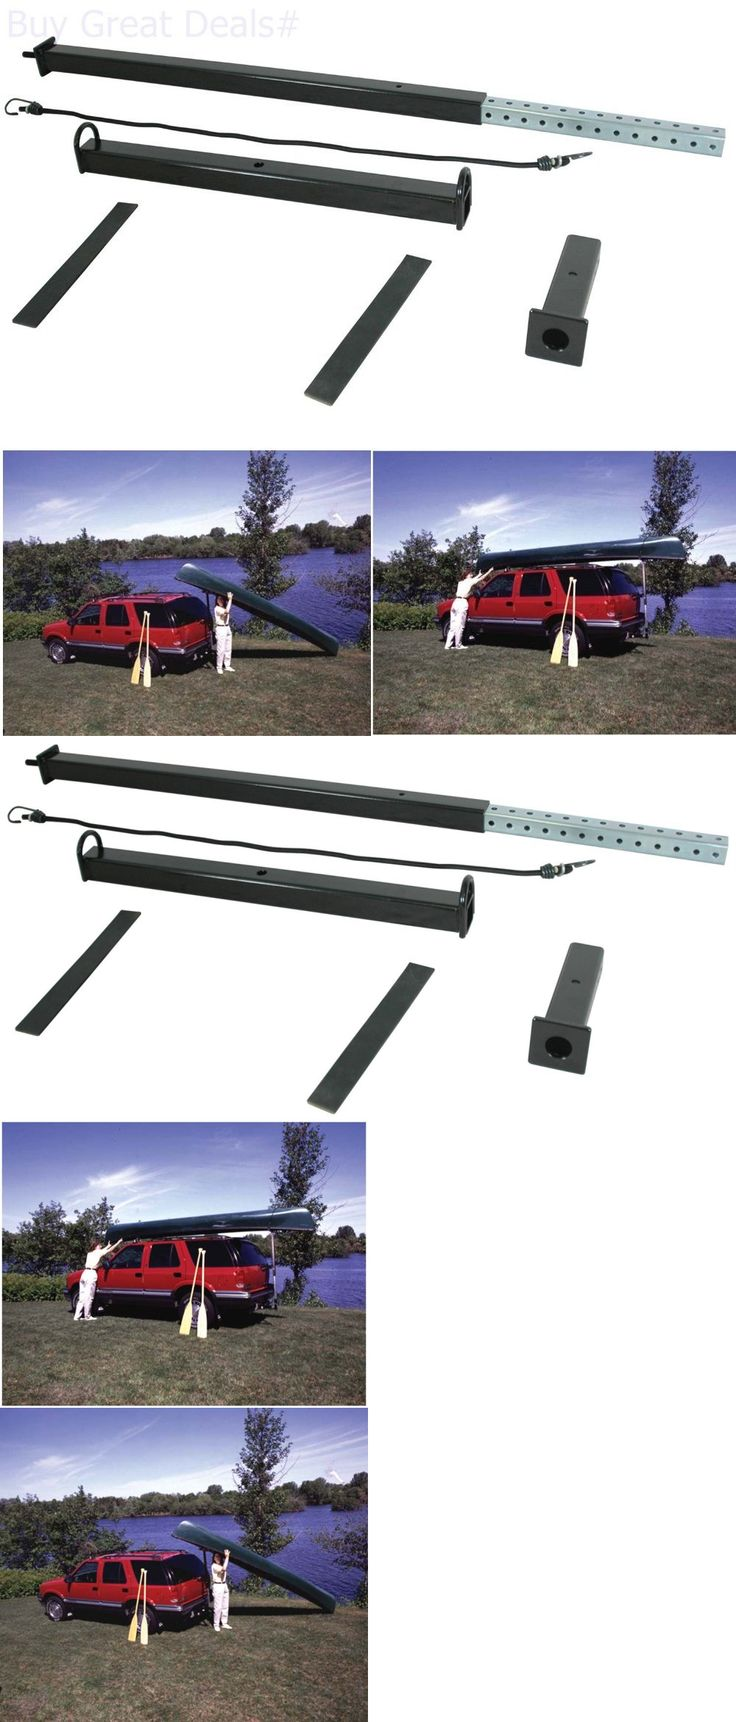 Other Kayak Canoe and Rafting 36123: Canoe Kayak Loader Reese Towpower Trailer Hitch Vehicle Durable Car Truck Racks -> BUY IT NOW ONLY: $87.03 on eBay!